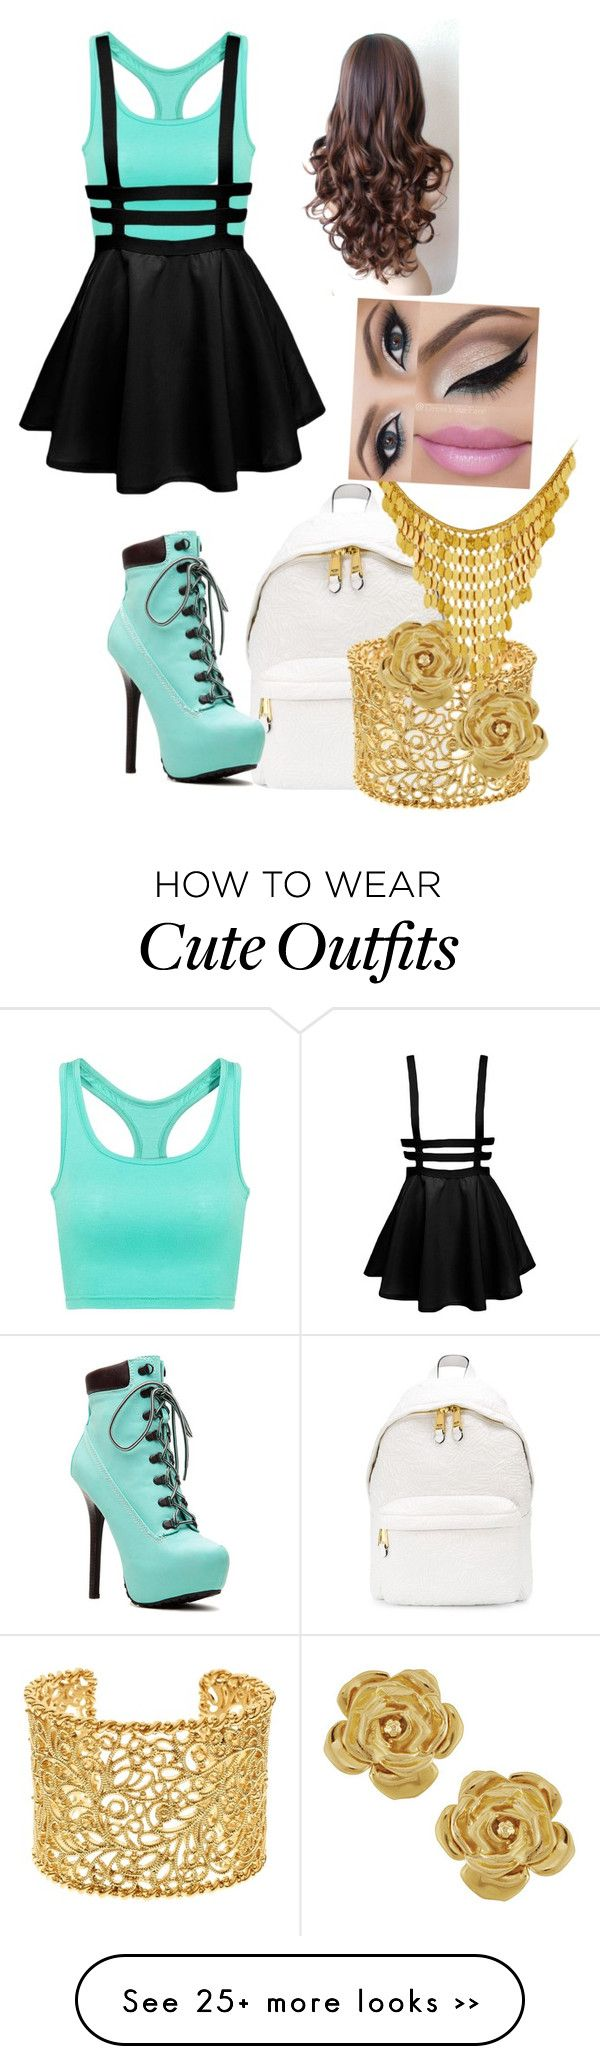 """Outfit"" by wyldstyle20 on Polyvore featuring Moschino, Brooks Brothers and Vintage"